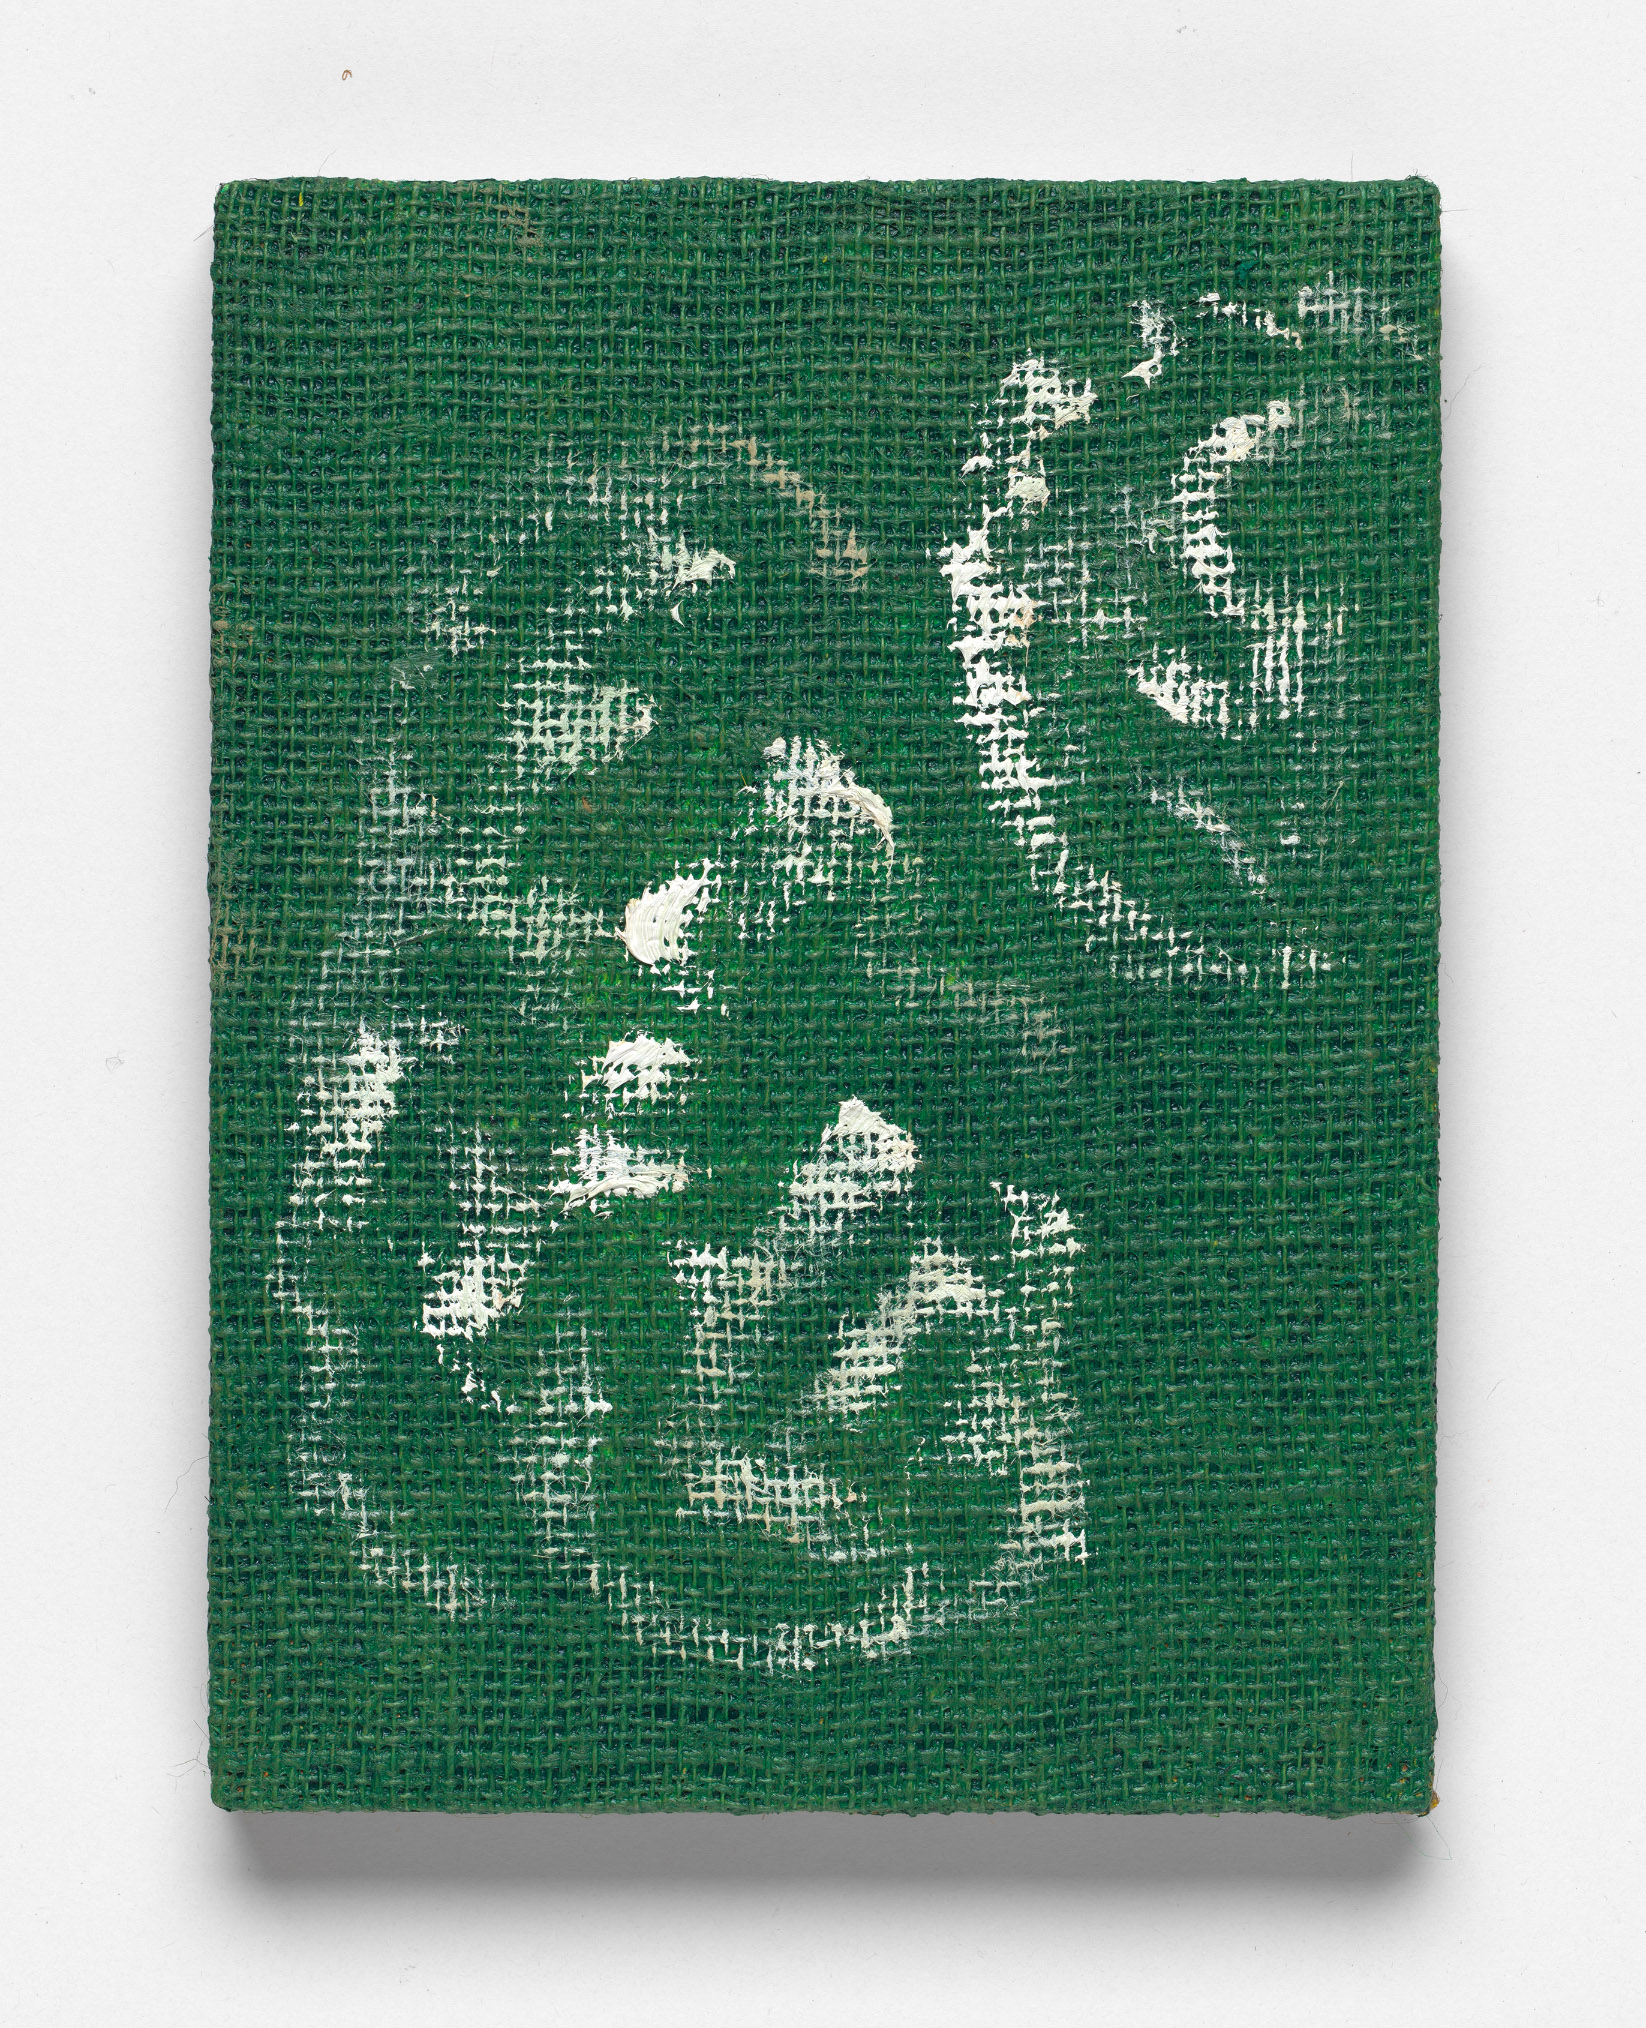 After L'Été 1 (green), Oil on Hessian on Board, 30 x 23cm, 2018. Photograph by Matthew Stanton.